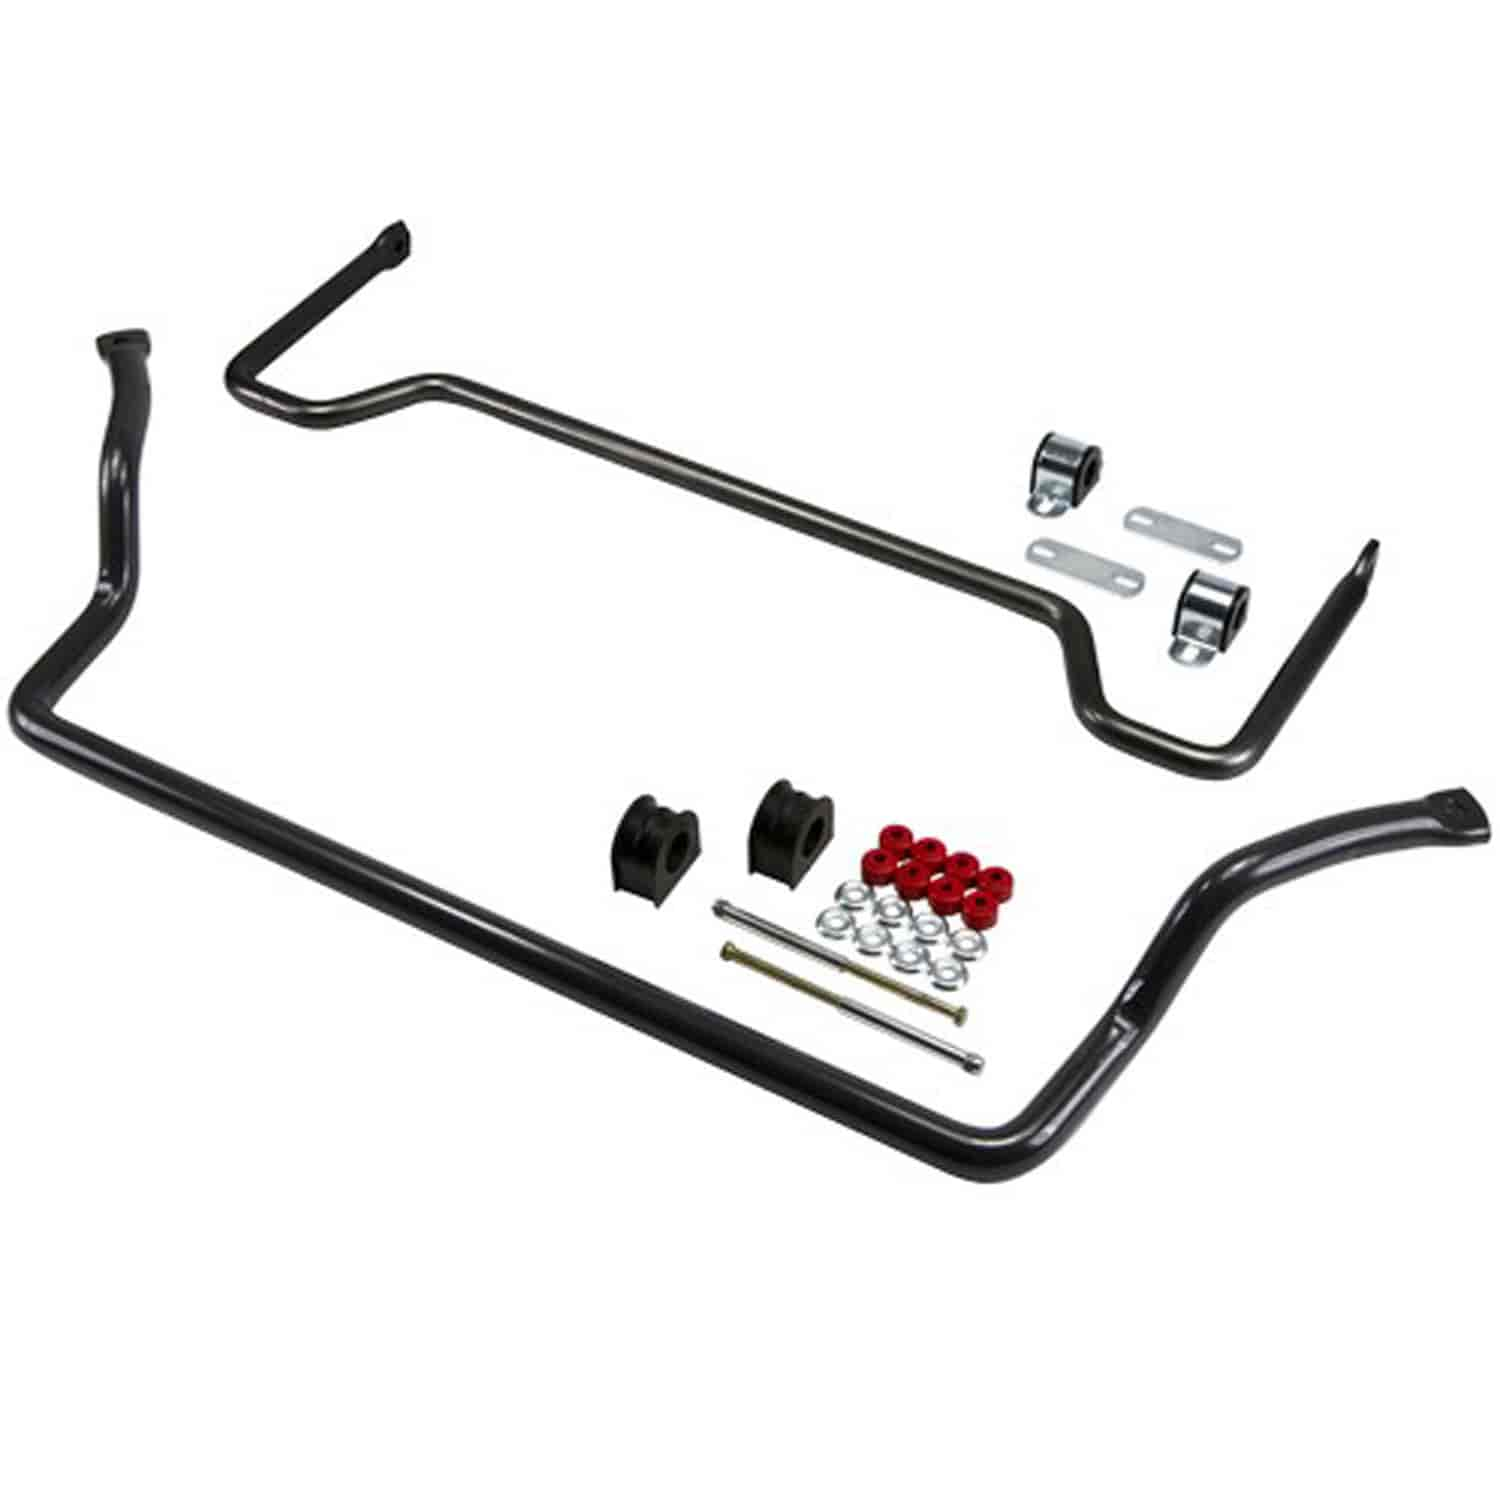 Belltech 9921: Front/Rear Sway Bar Kit for 1997-2002 Ford